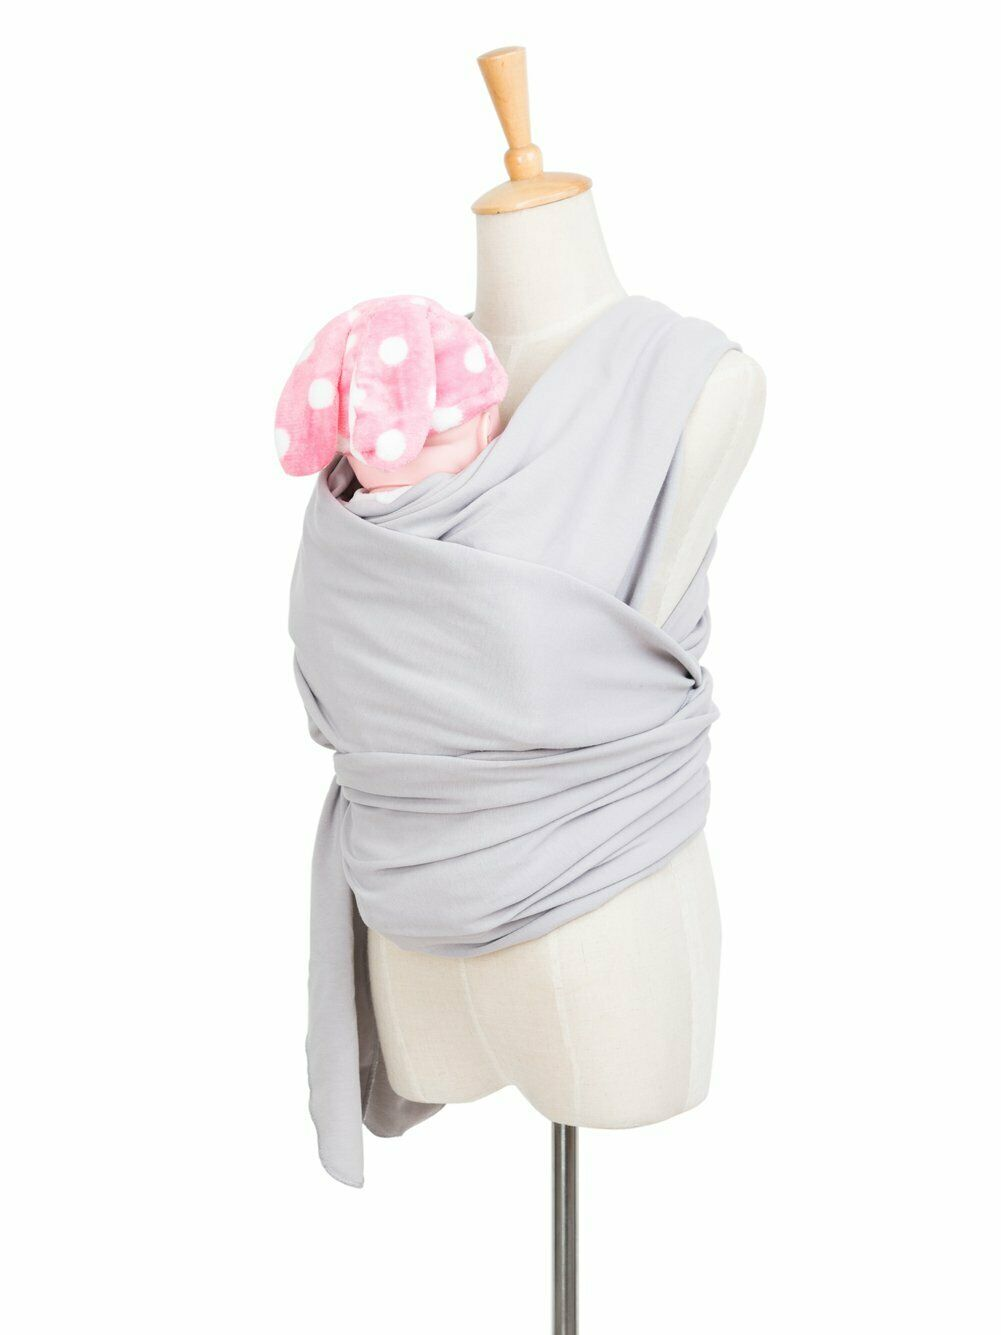 Image 21 - Baby-Carrier-Wrap-Breathable-Sling-Newborn-Ergonomic-Backpack-Cotton-NEW